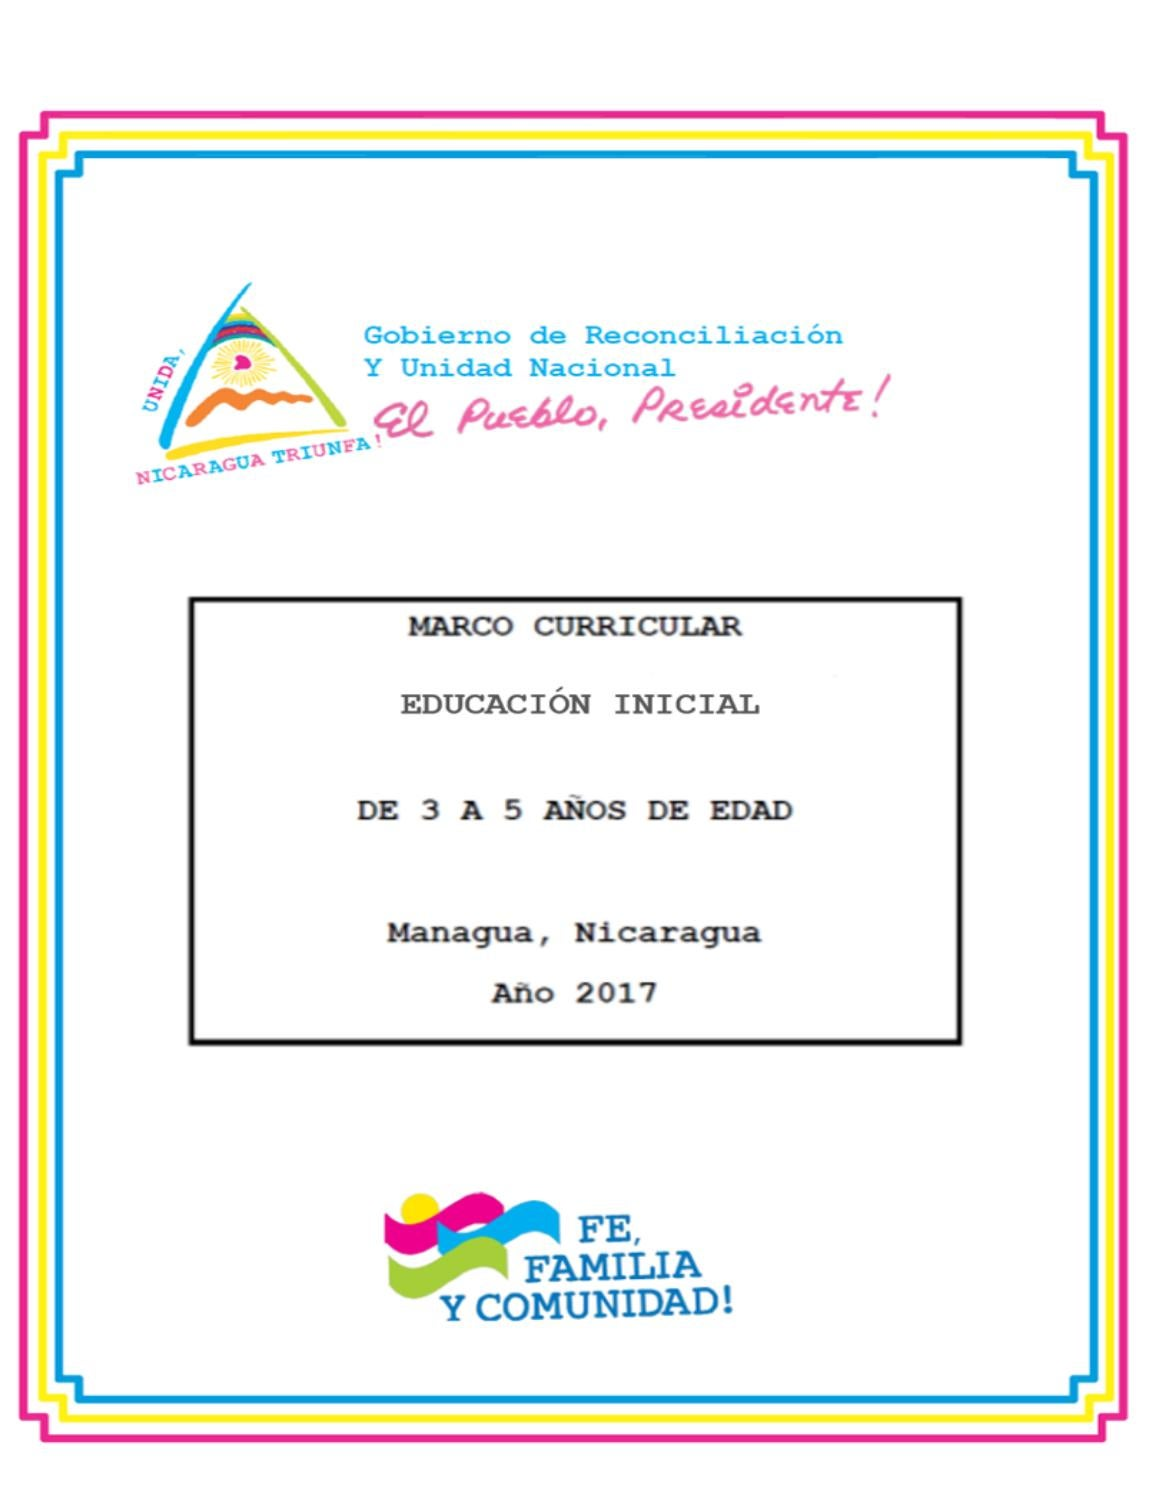 Marco curricular Educación Inicial 2017 by MINED Nicaragua - issuu